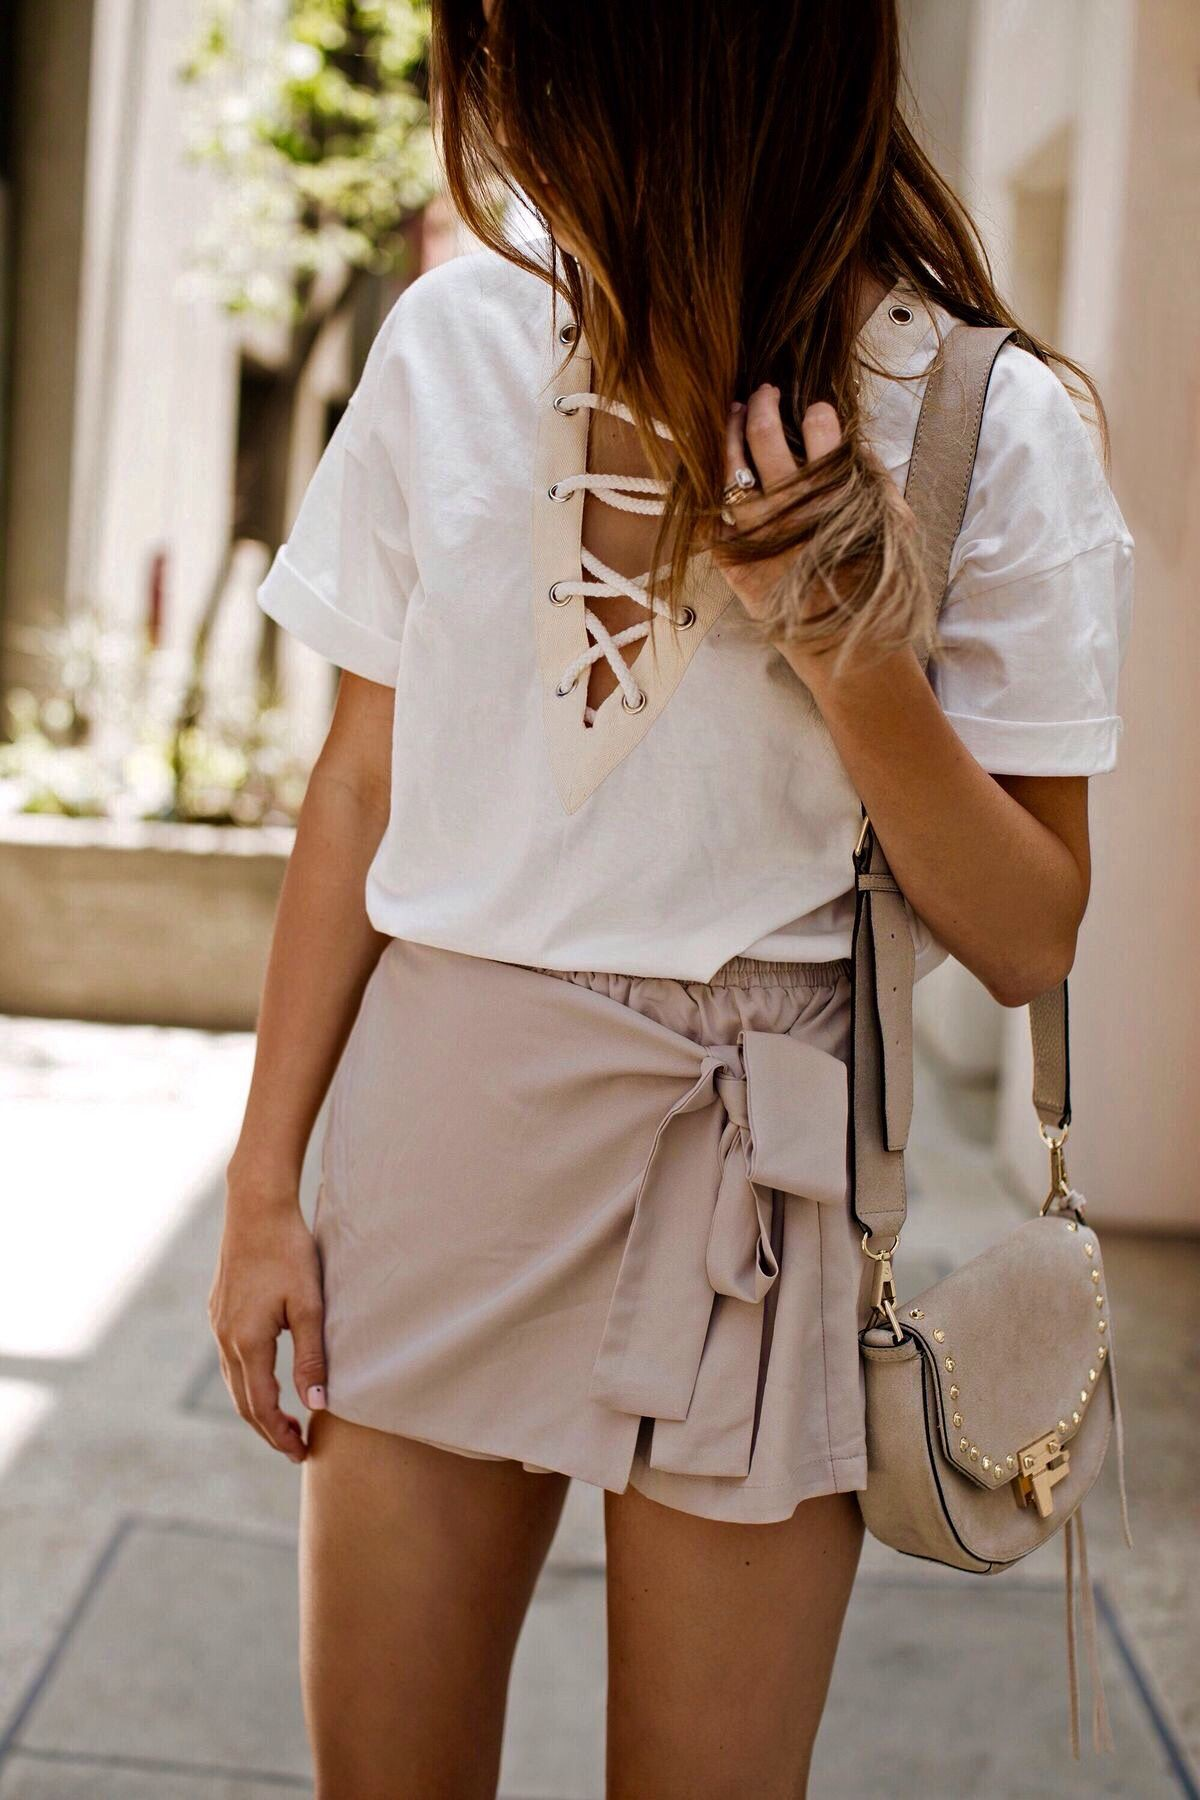 Beige and white colour combination with wedding dress, shorts, skirt